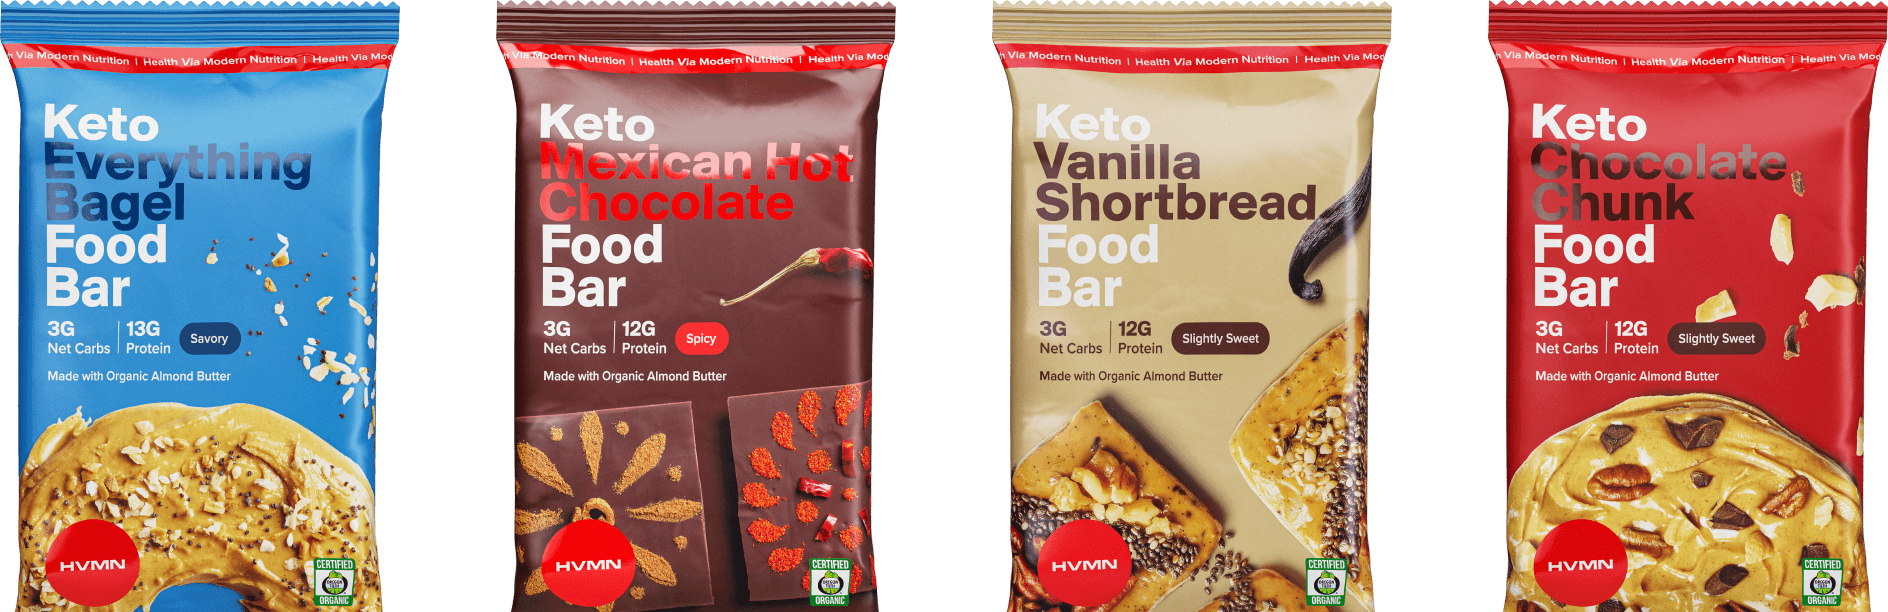 Keto Food Bar Flavors